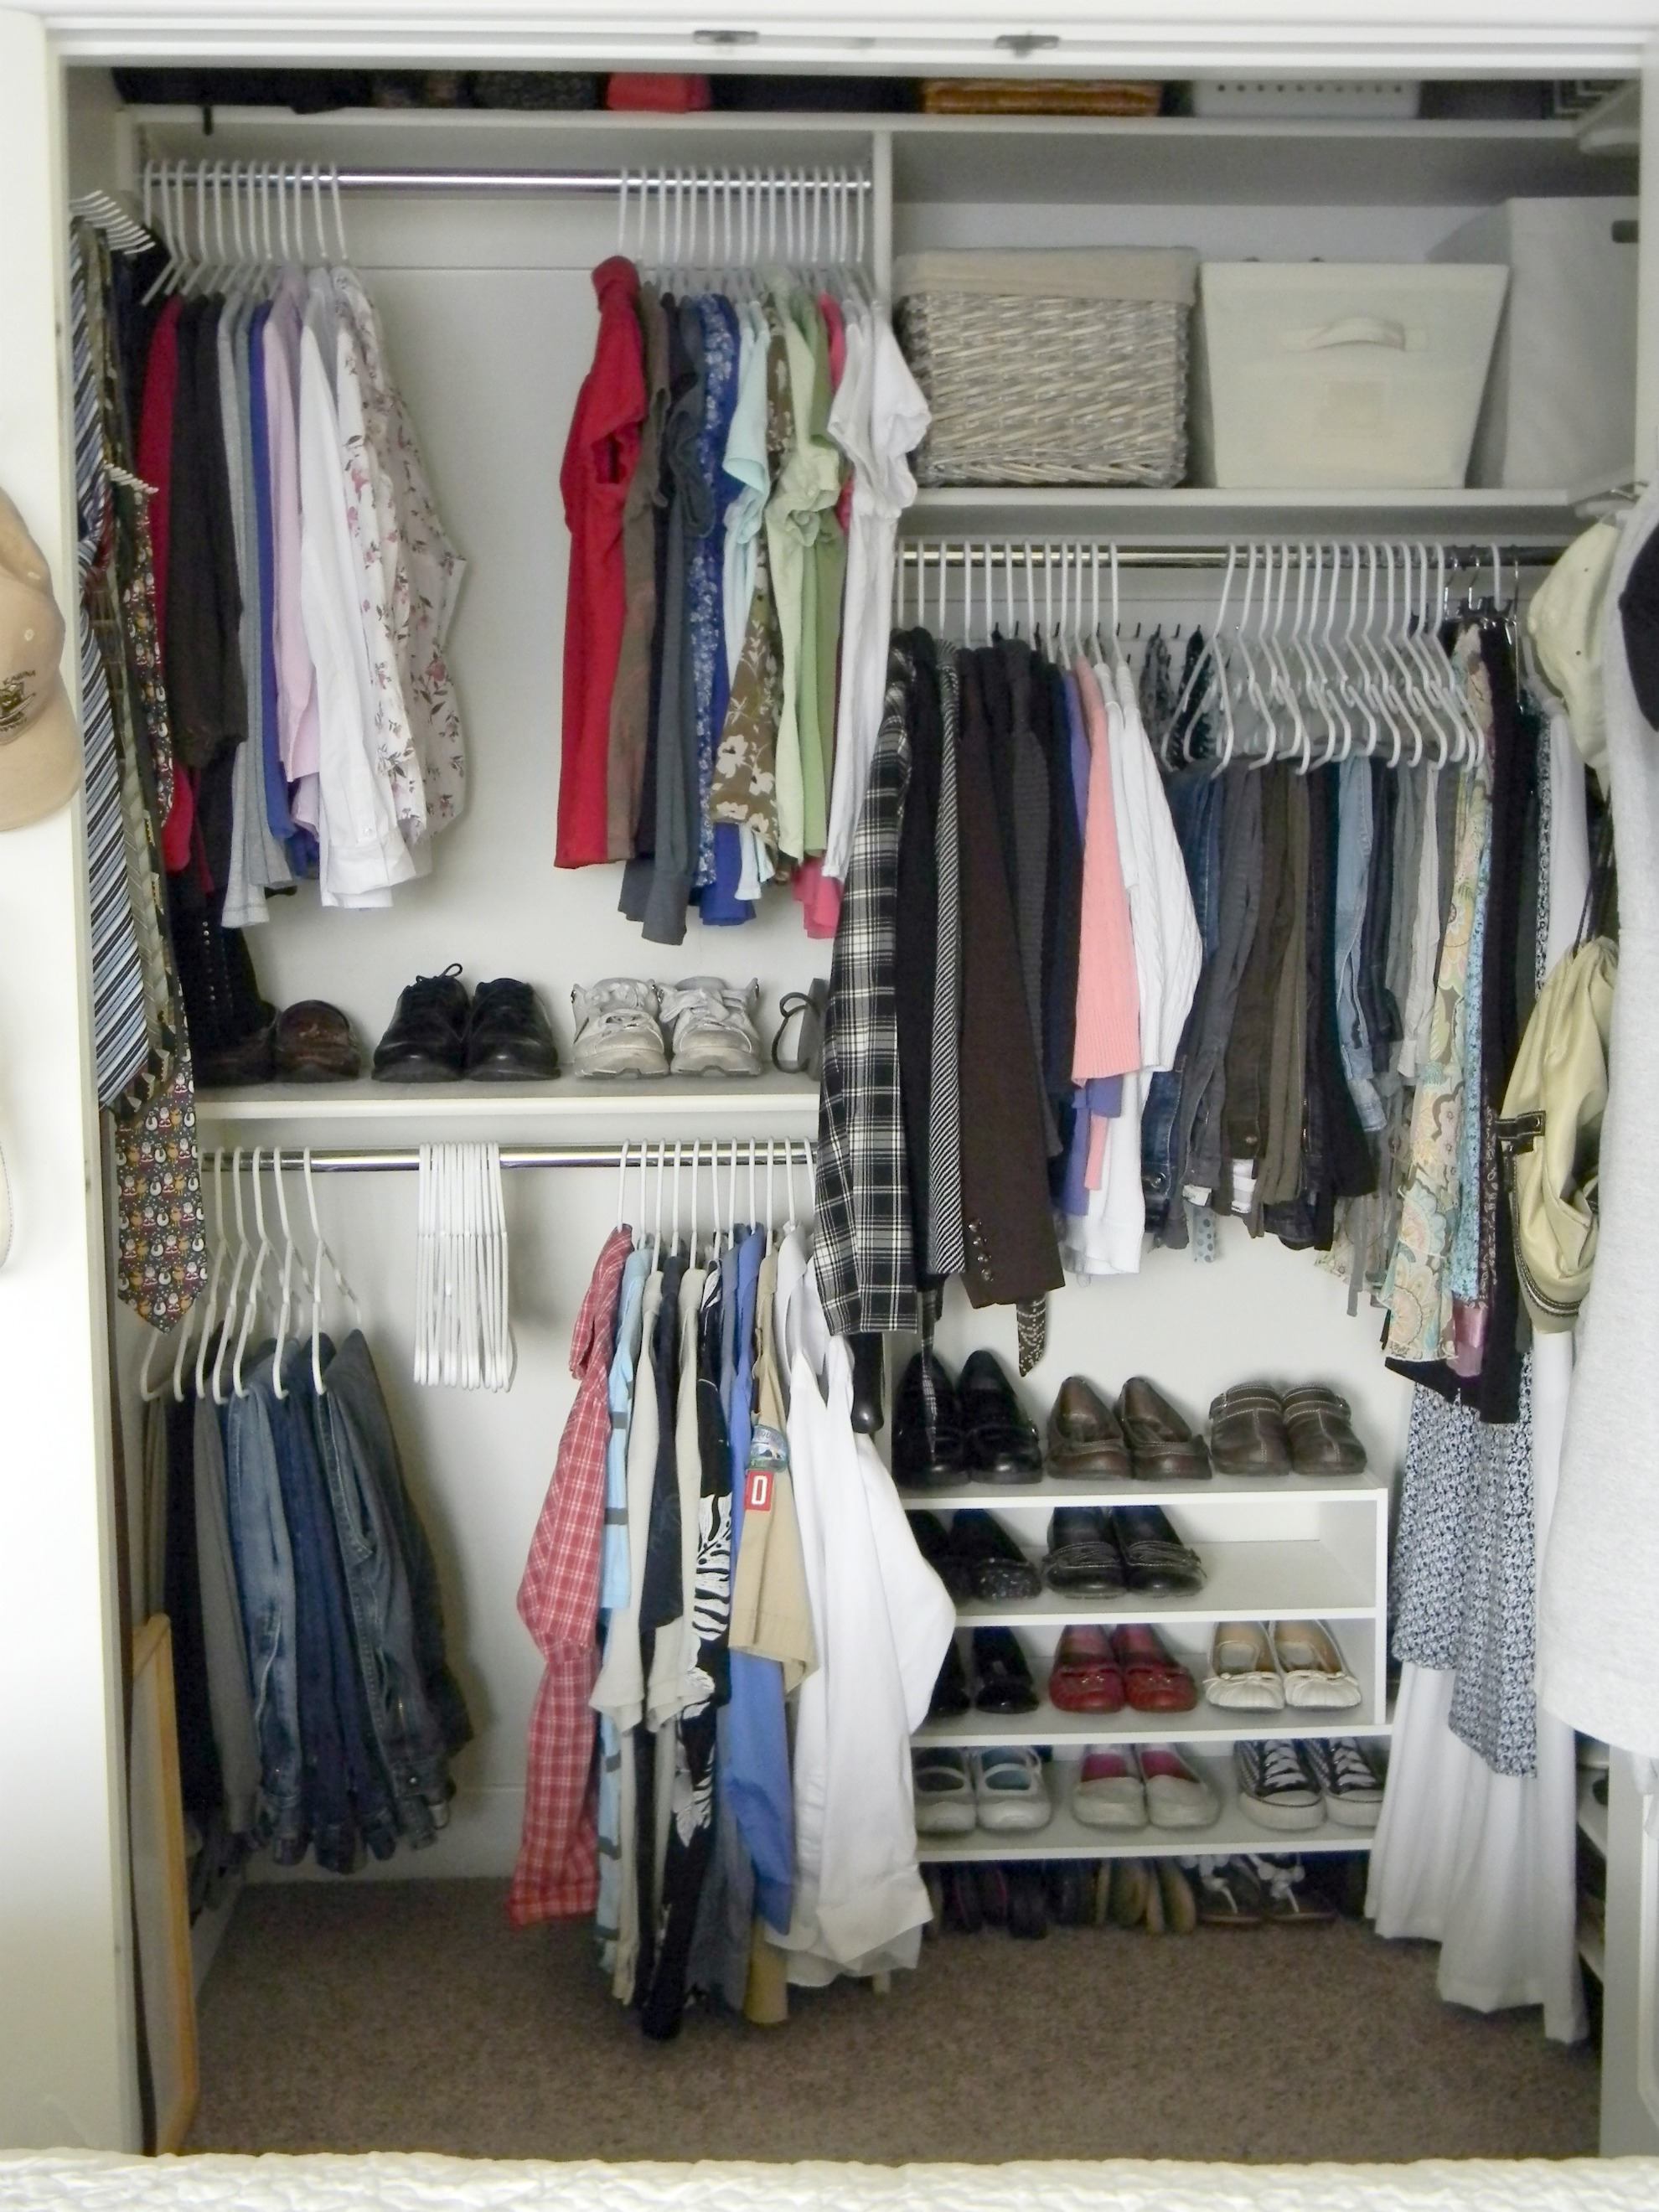 Simple White Closet Organizer For Small With Shoes Racks And Storage Bins Clothes Hangers